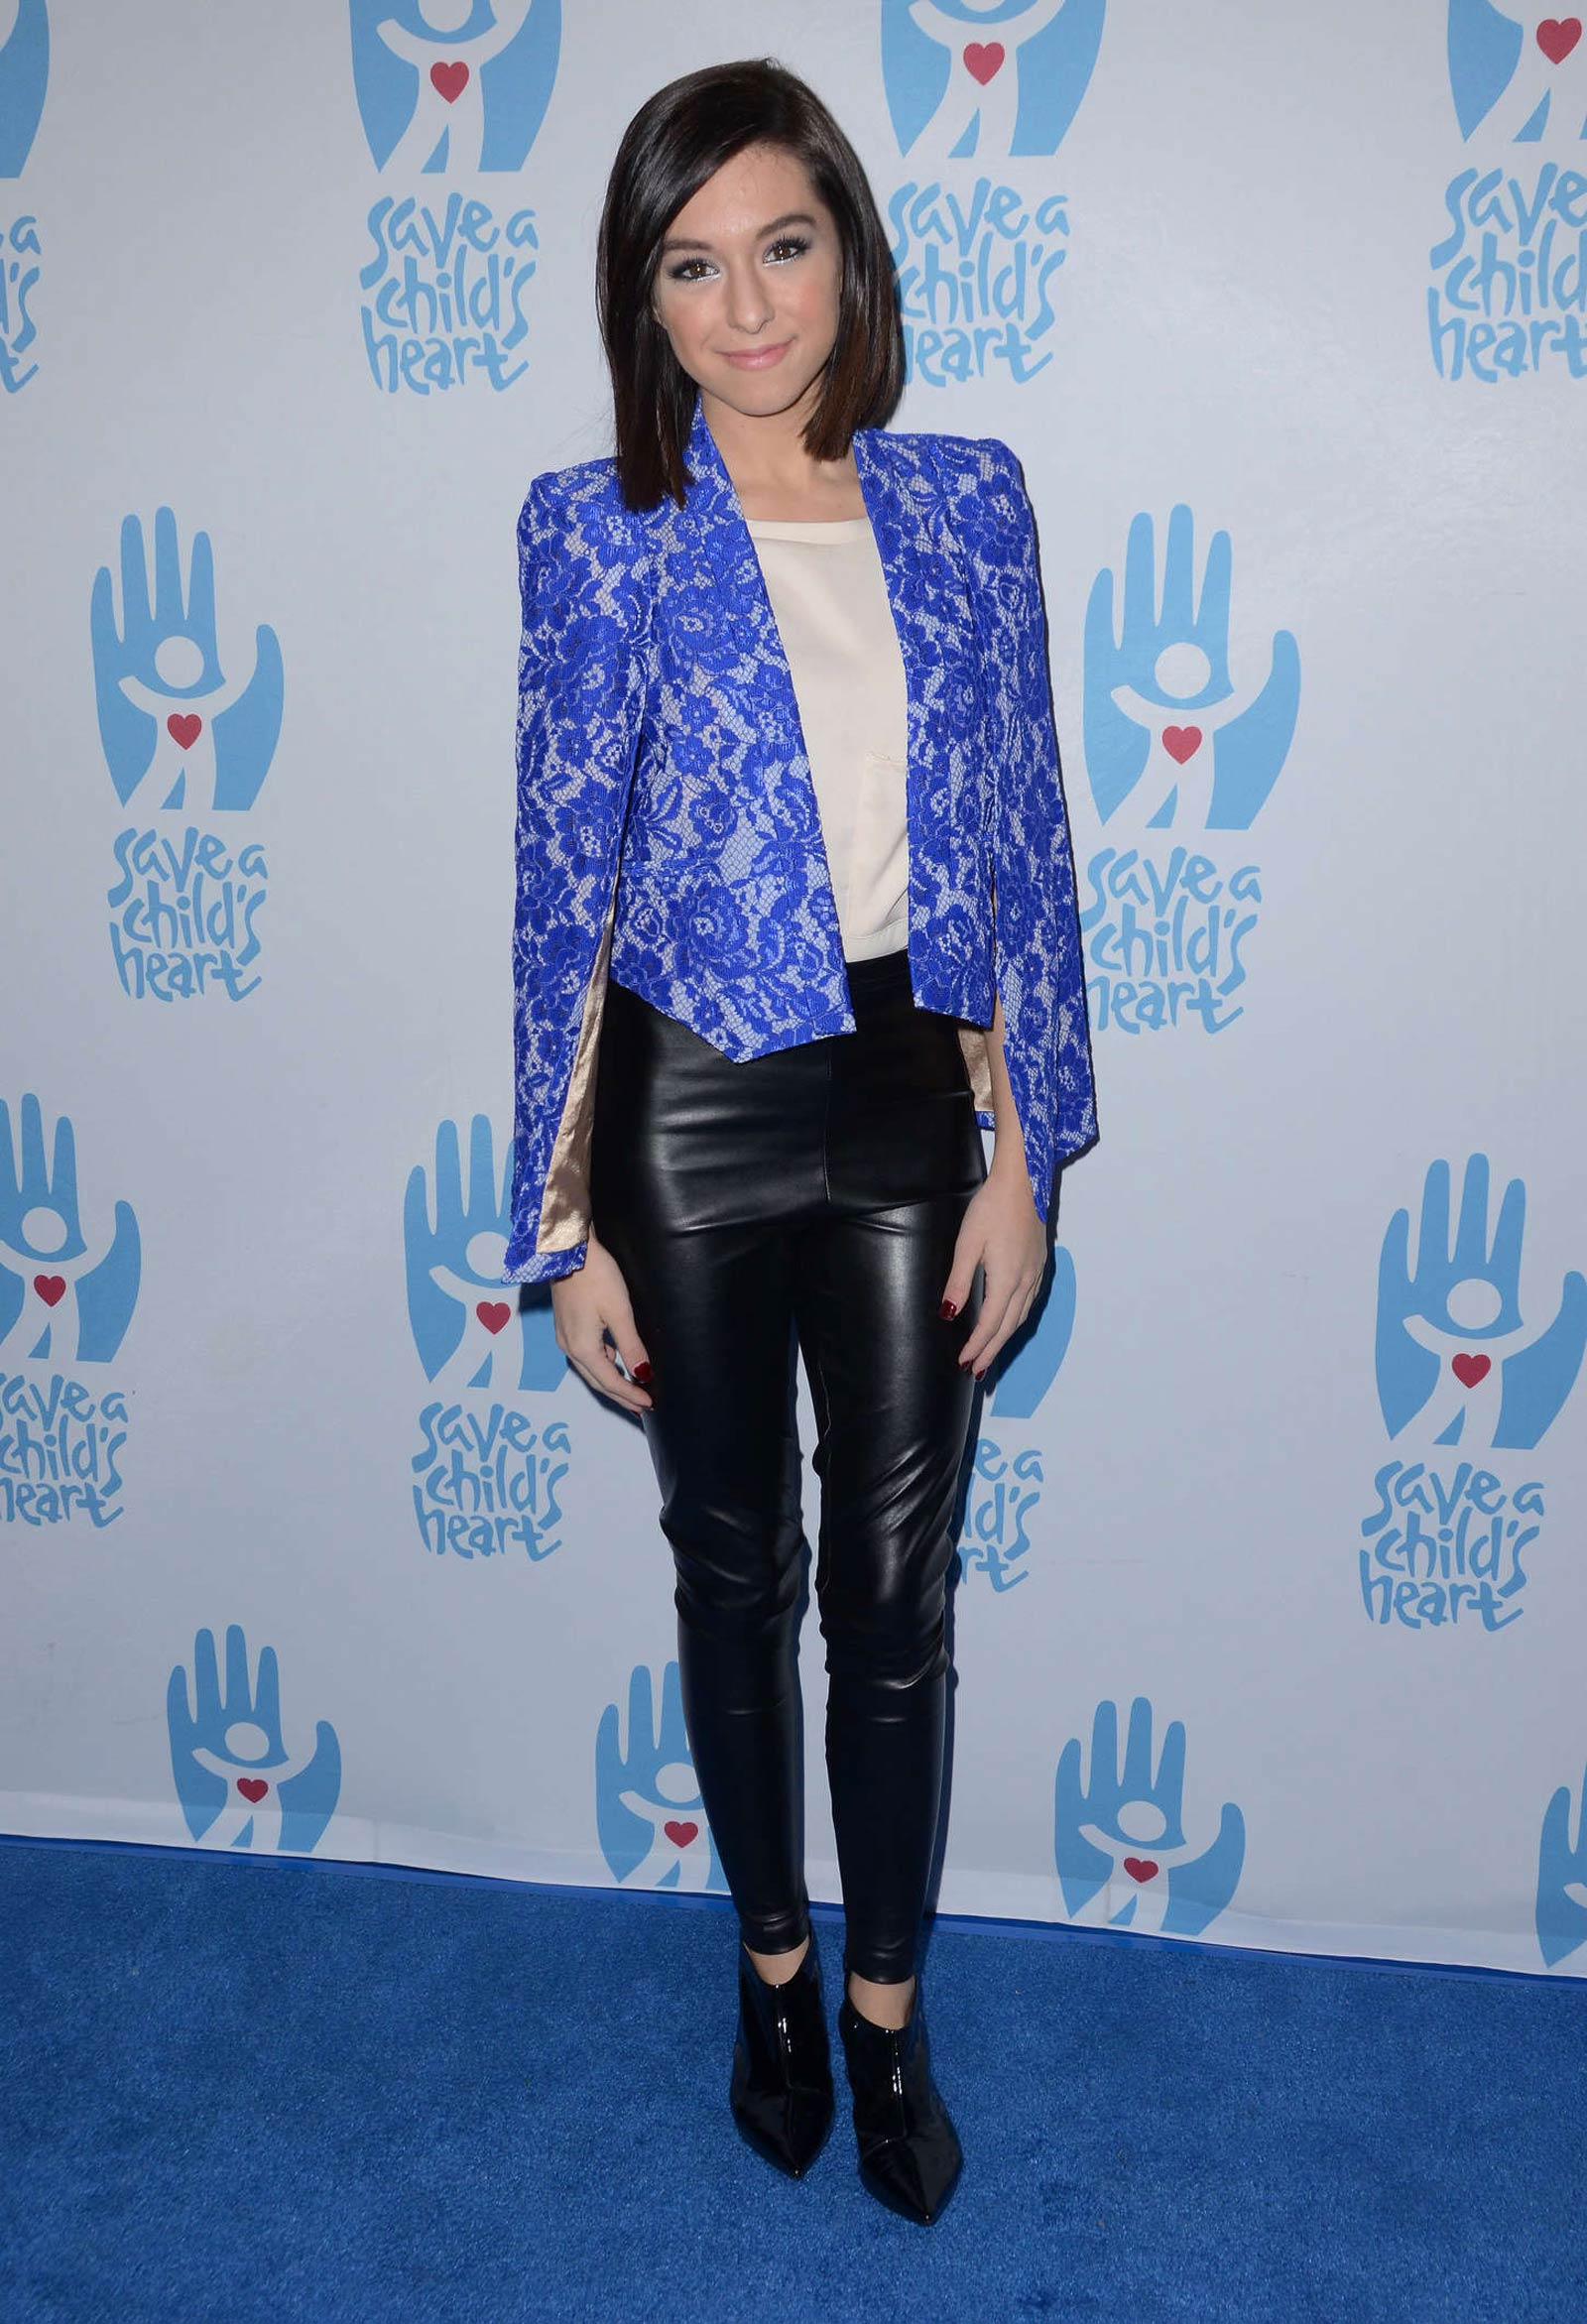 Christina Grimmie attends 2nd Annual Save a Child's Heart Gala